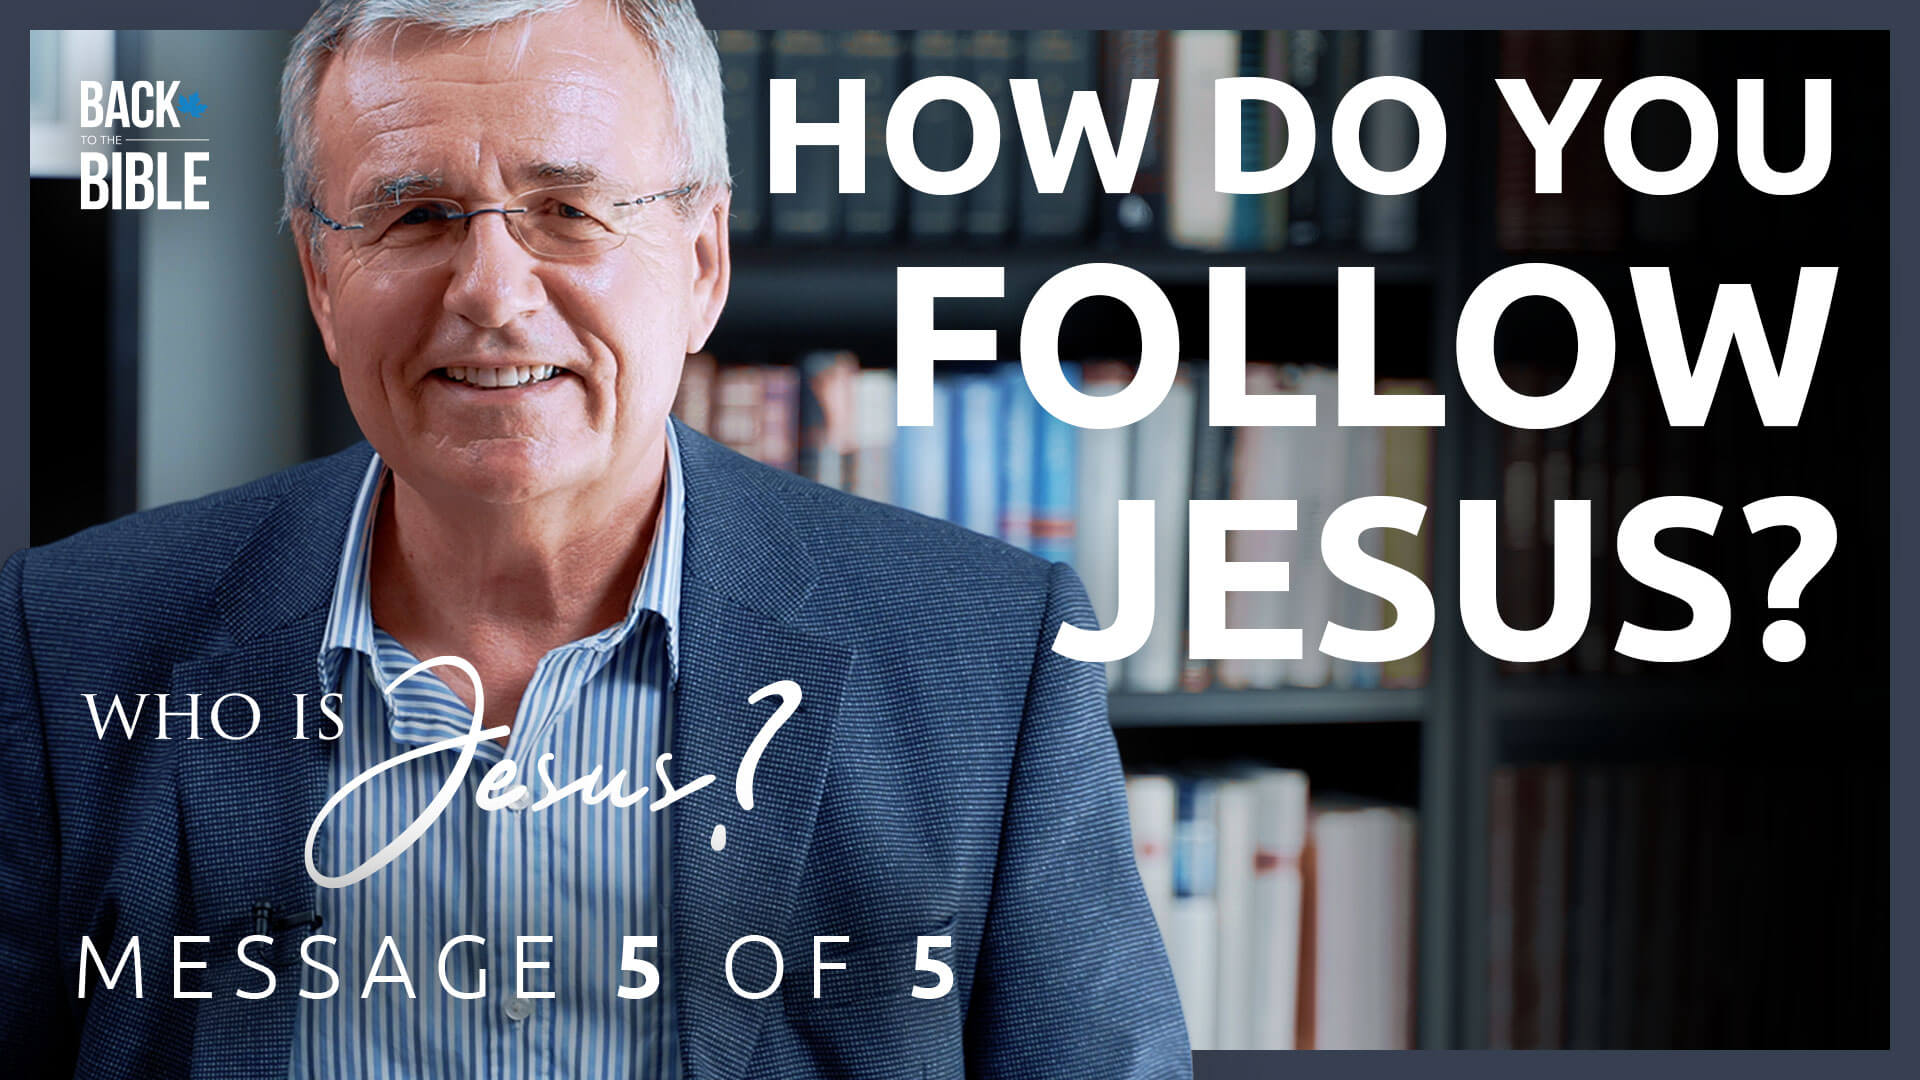 How Do You Follow Jesus? - Who is Jesus? - Dr. John Neufeld - Back to the Bible Canada